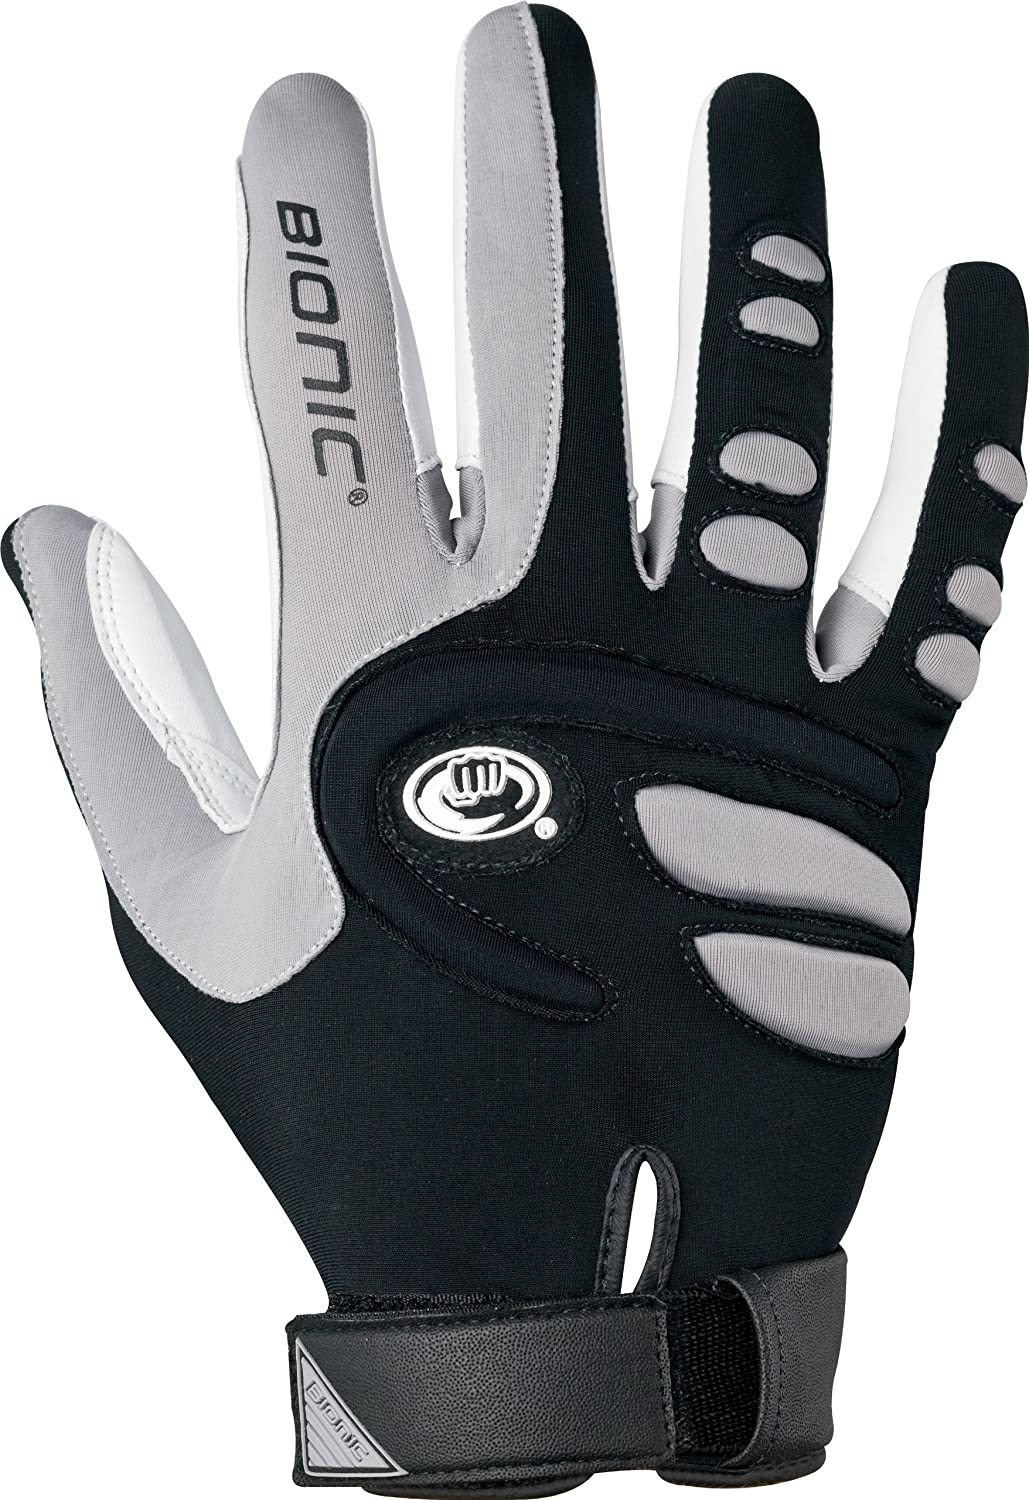 Bionic leather work gloves - Amazon Com Bionic Men S Right Hand Racquetball Glove Sports Outdoors